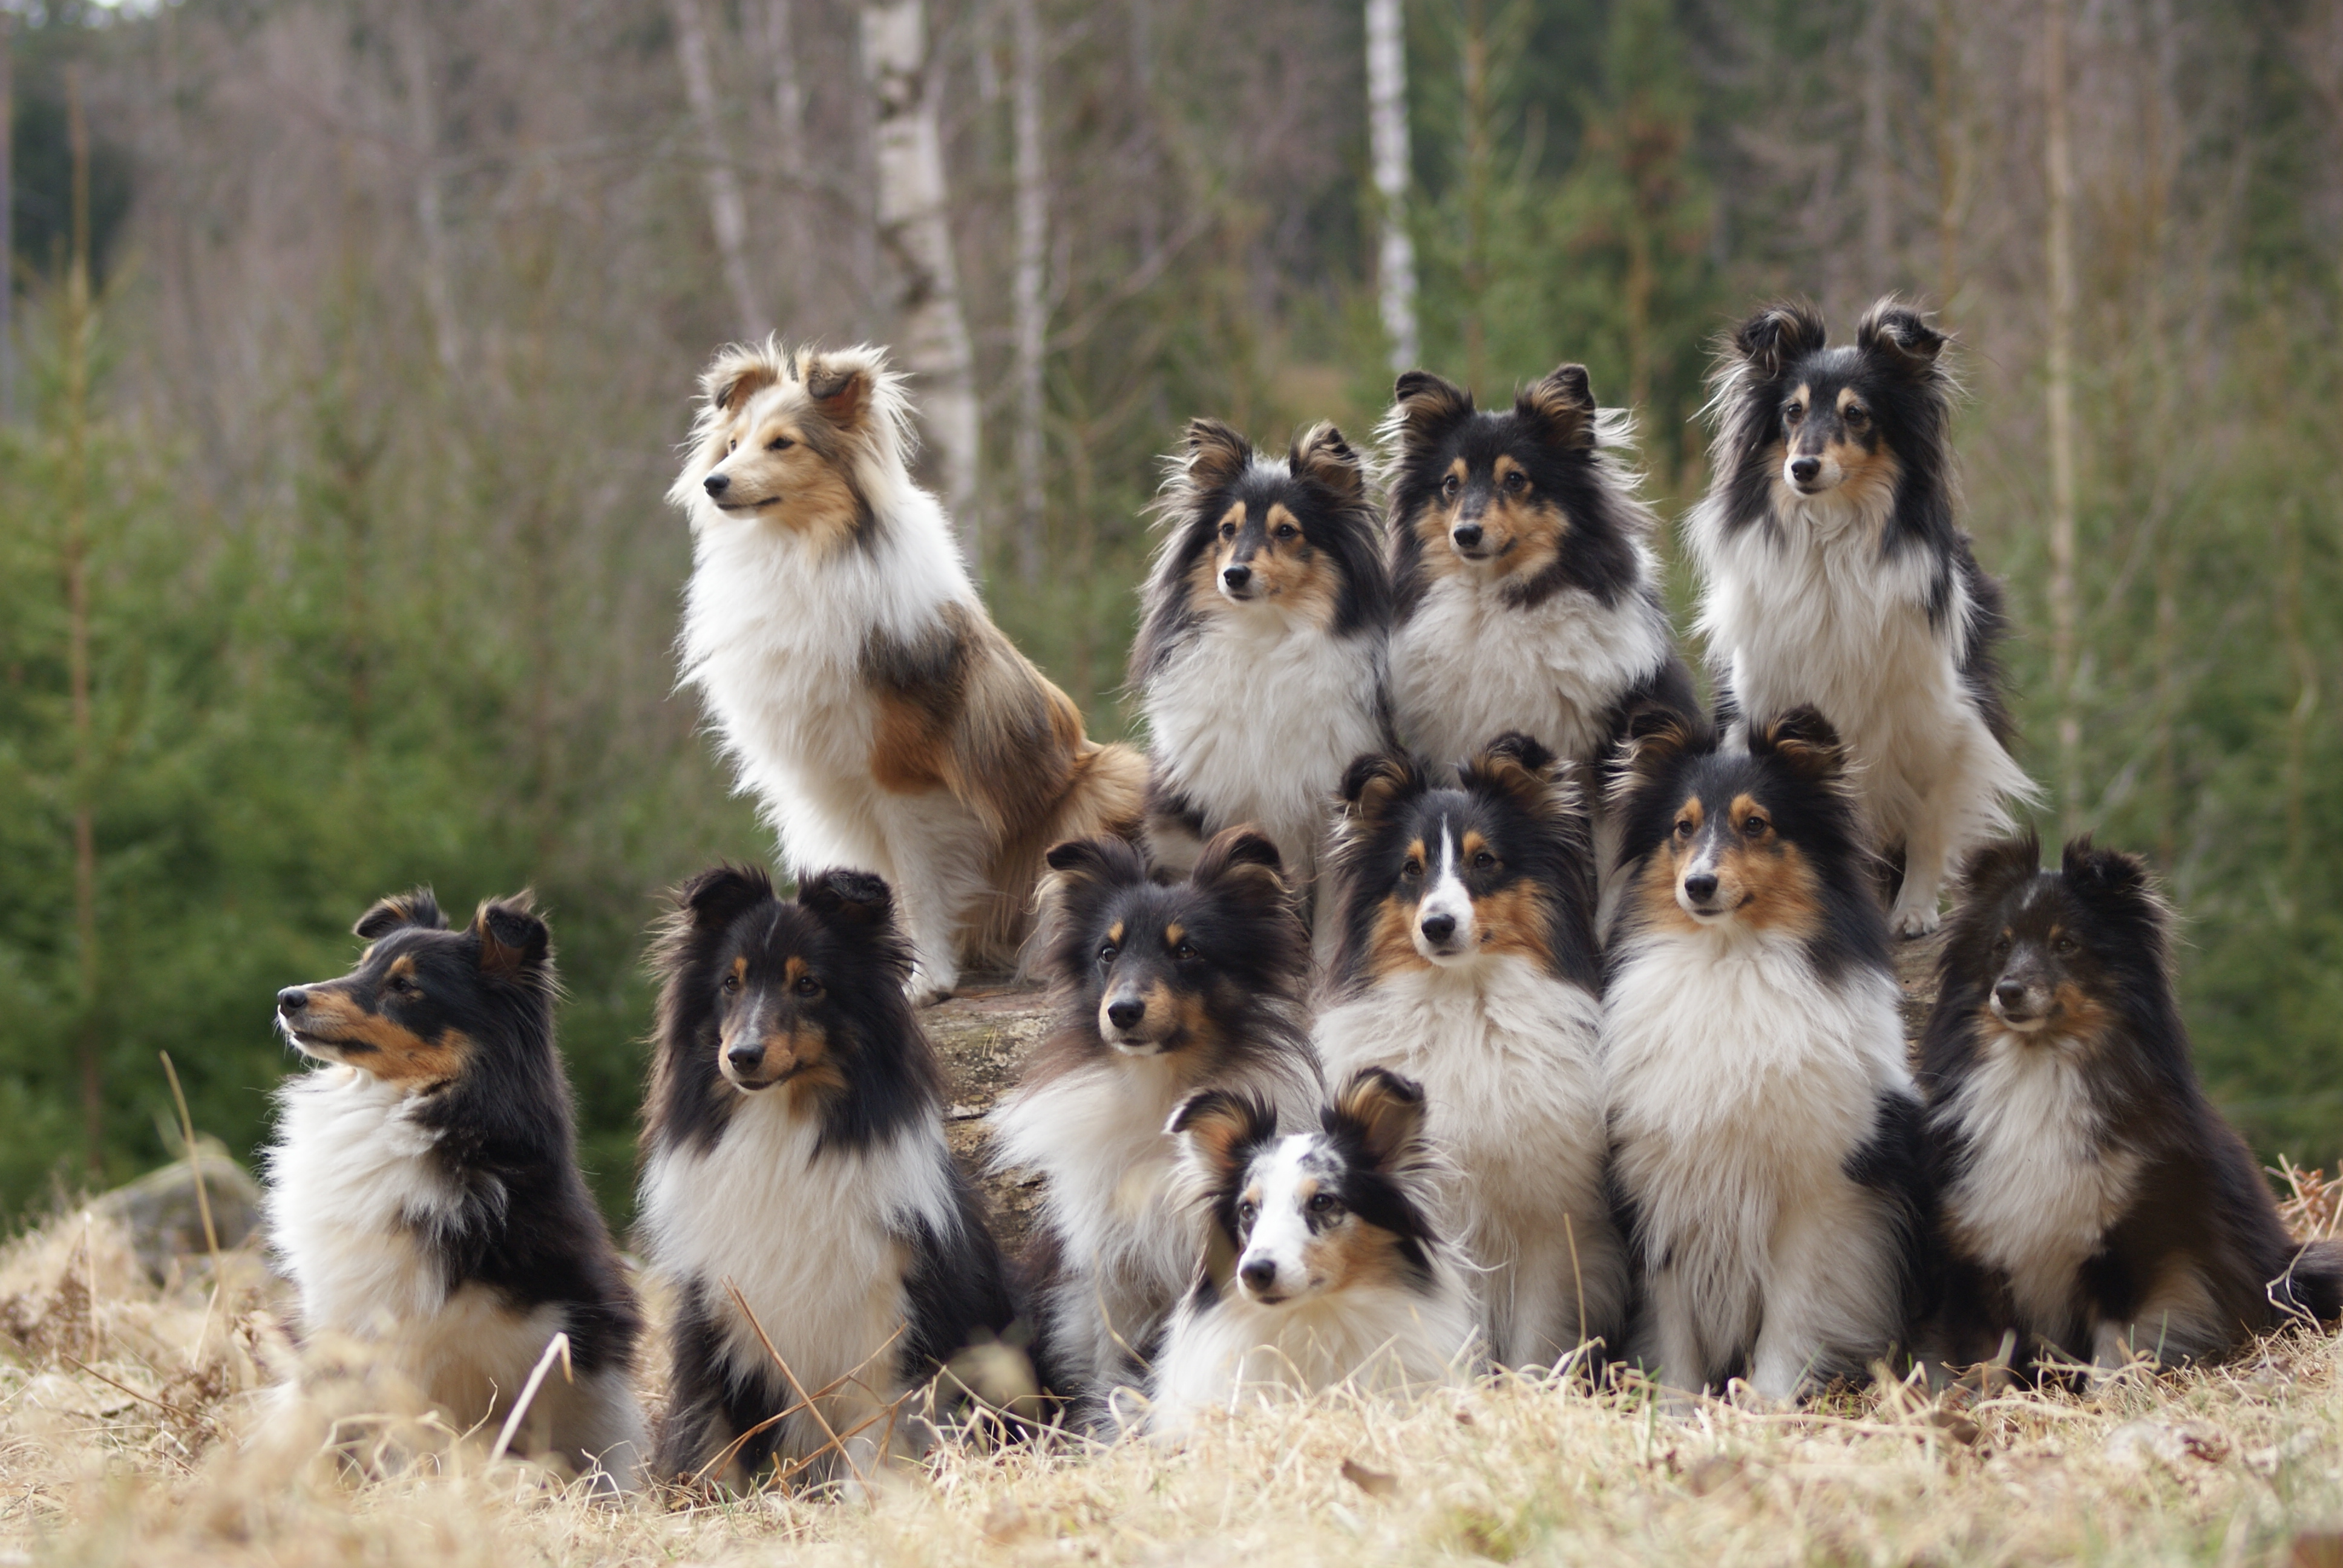 Image of a group of dogs awaiting orders by Jonas Löwgren